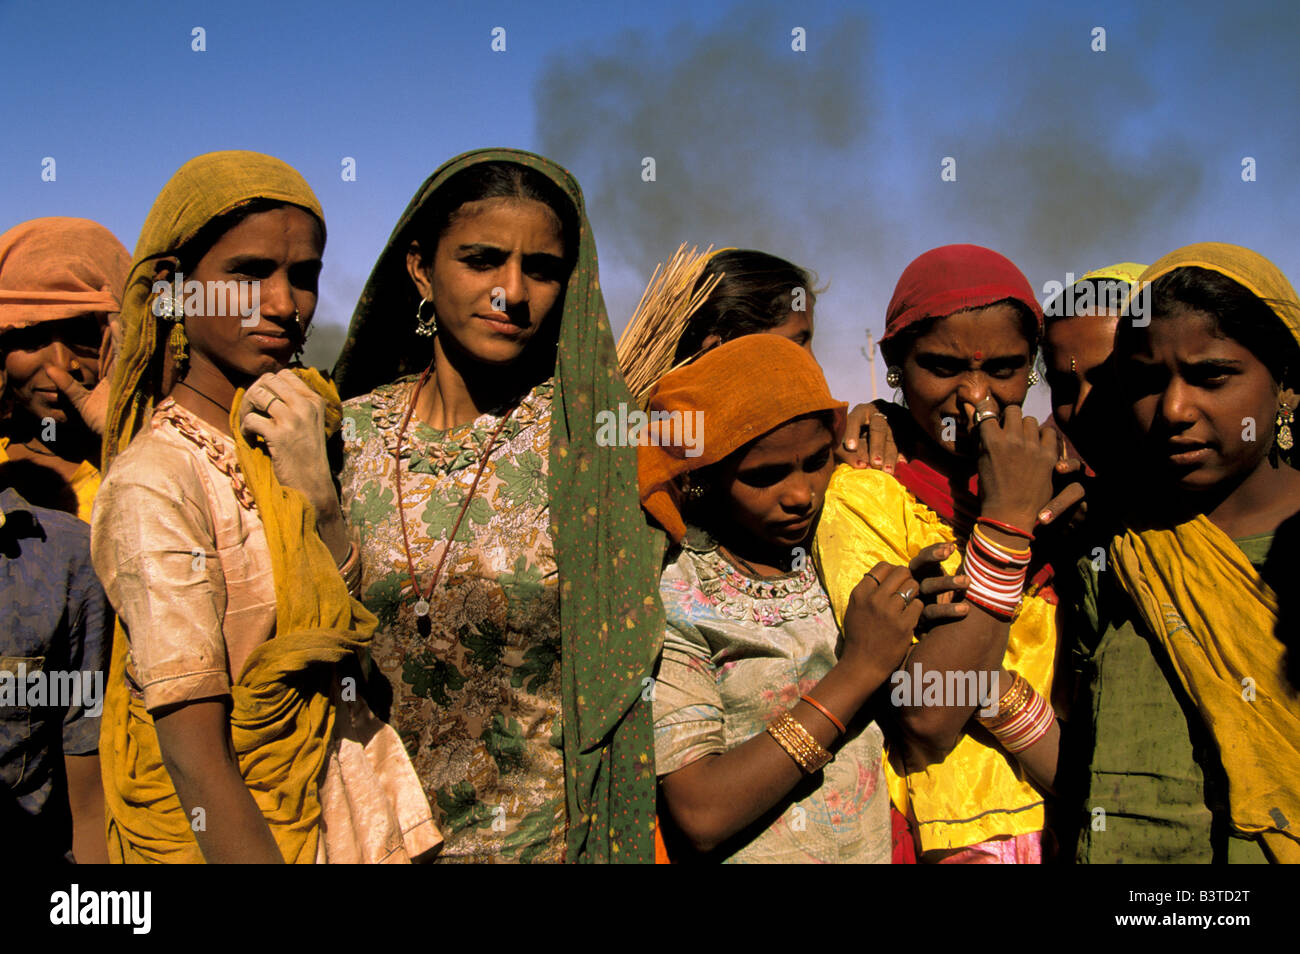 Asia, India, Jaiselmer. Construction workers, road crew. - Stock Image